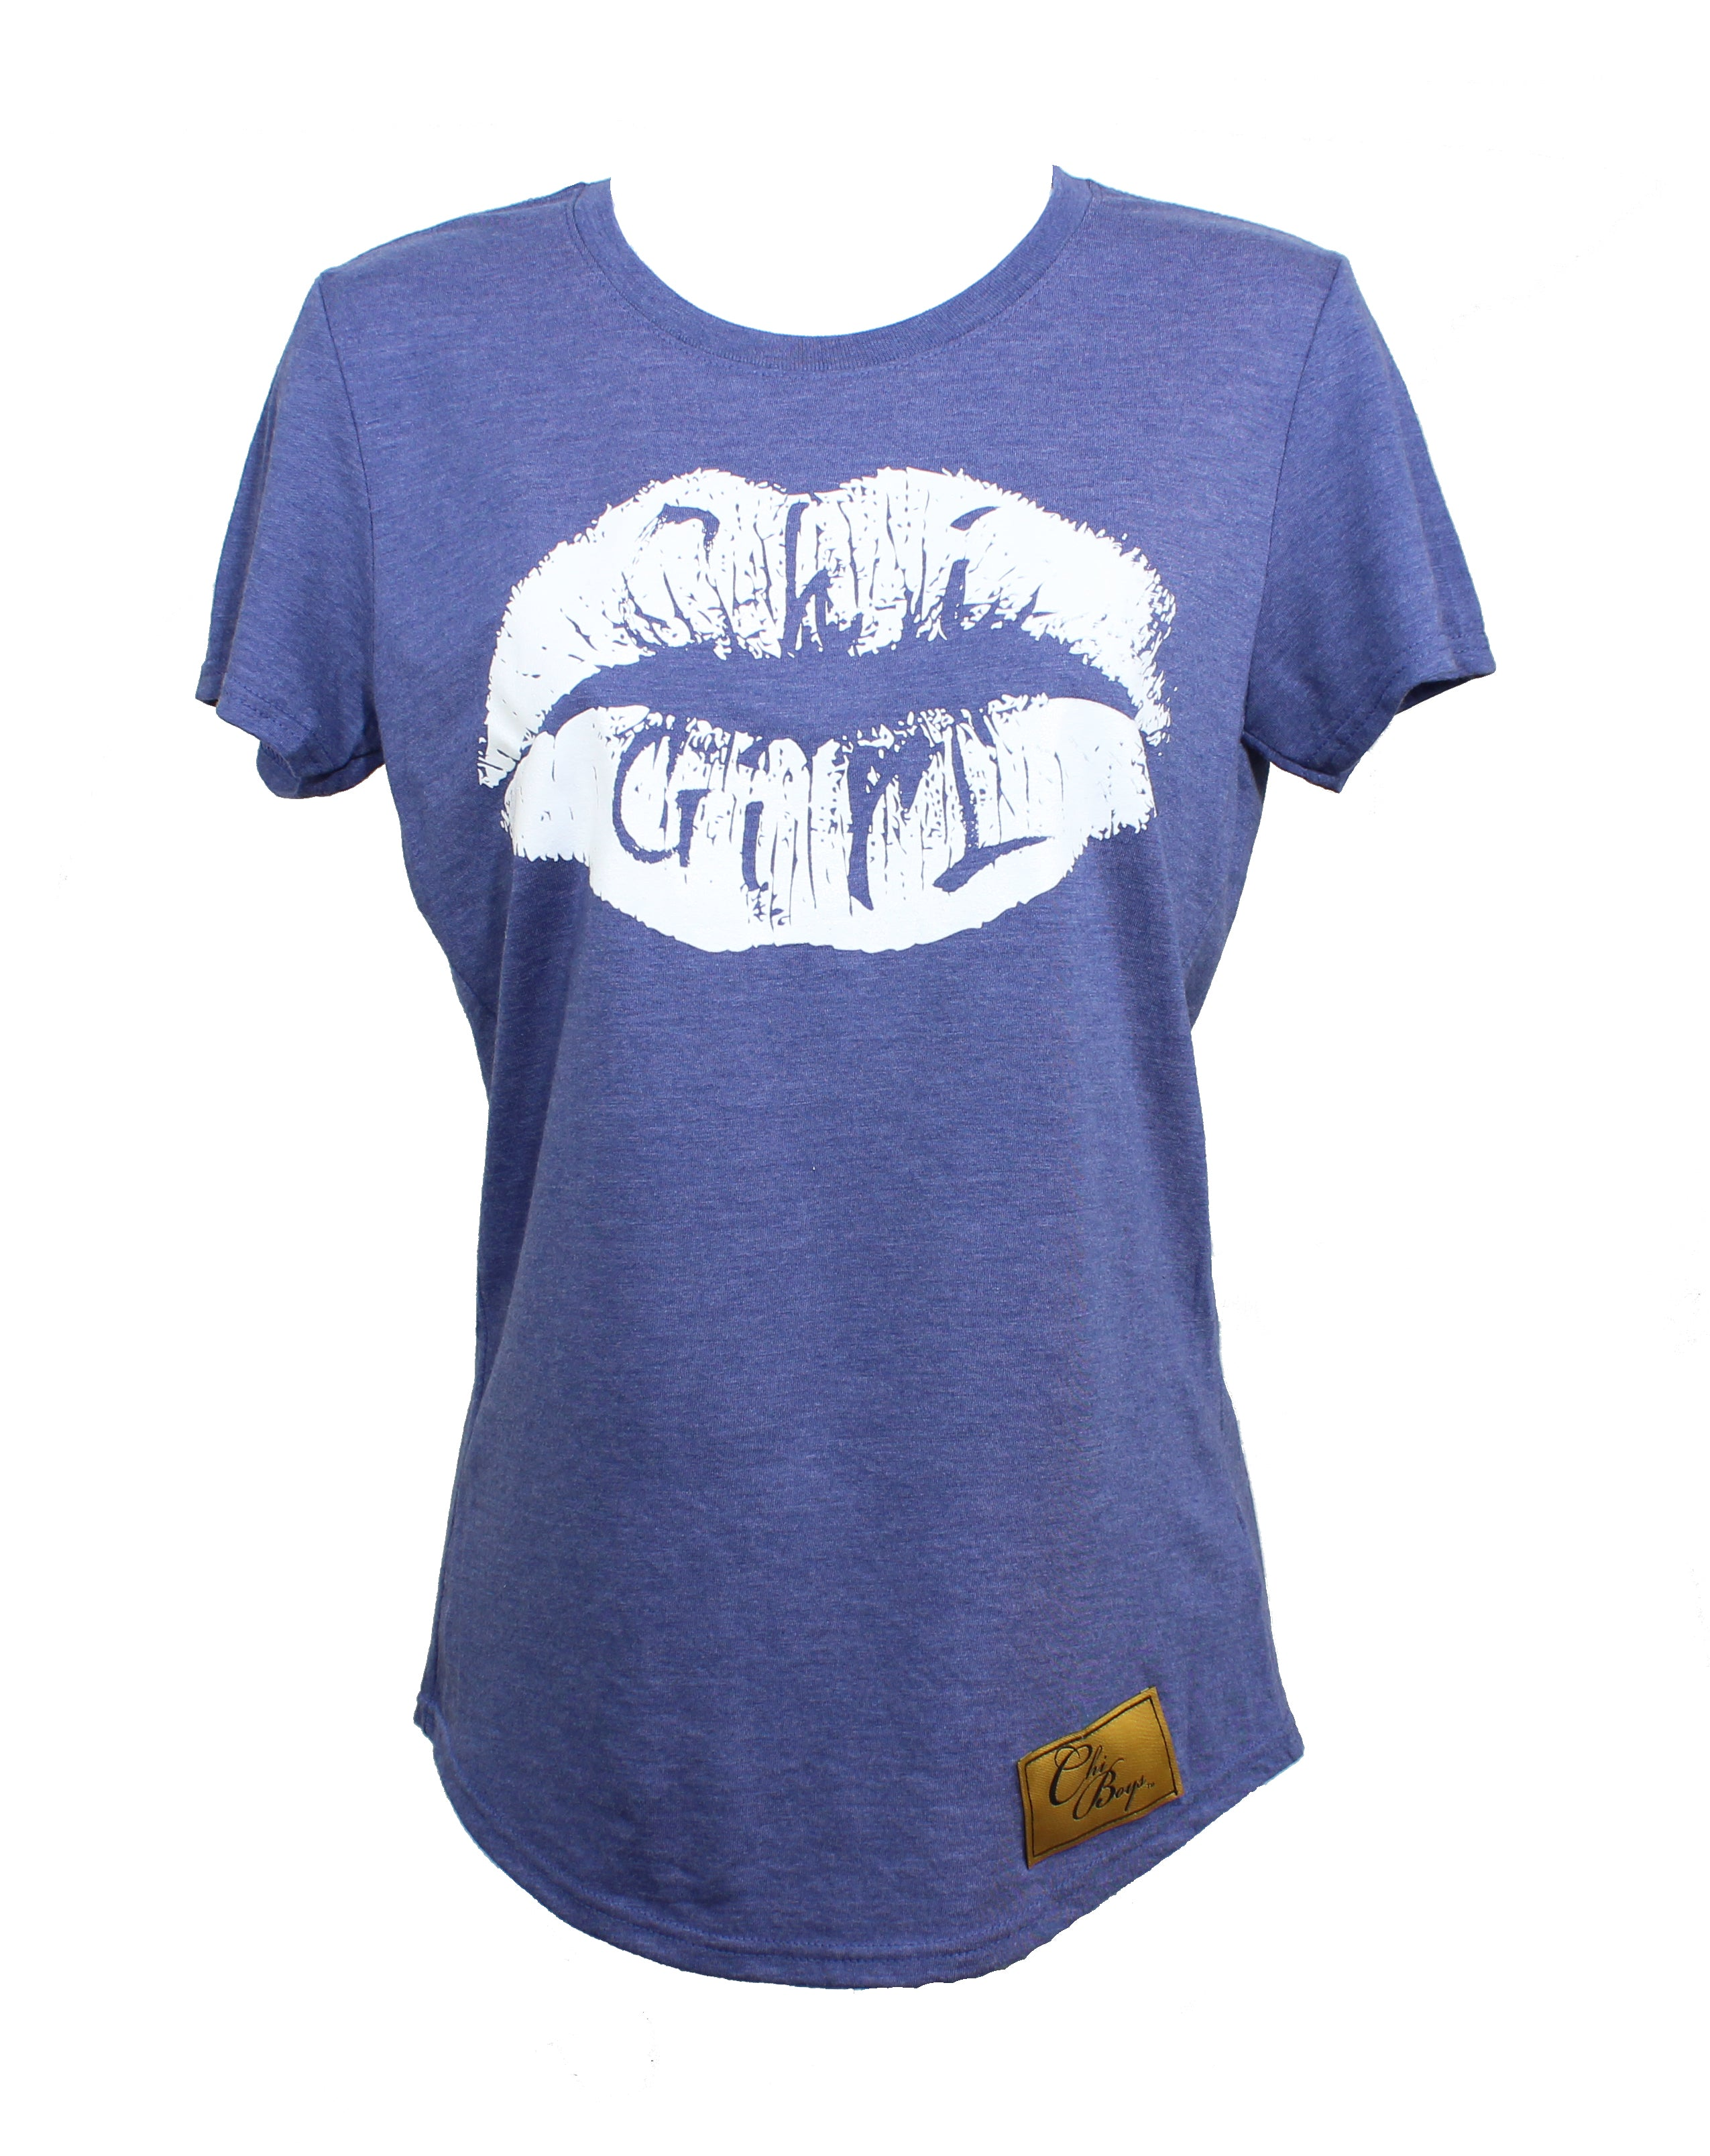 ChiGirl Lips (Vacation Blue w/ White)